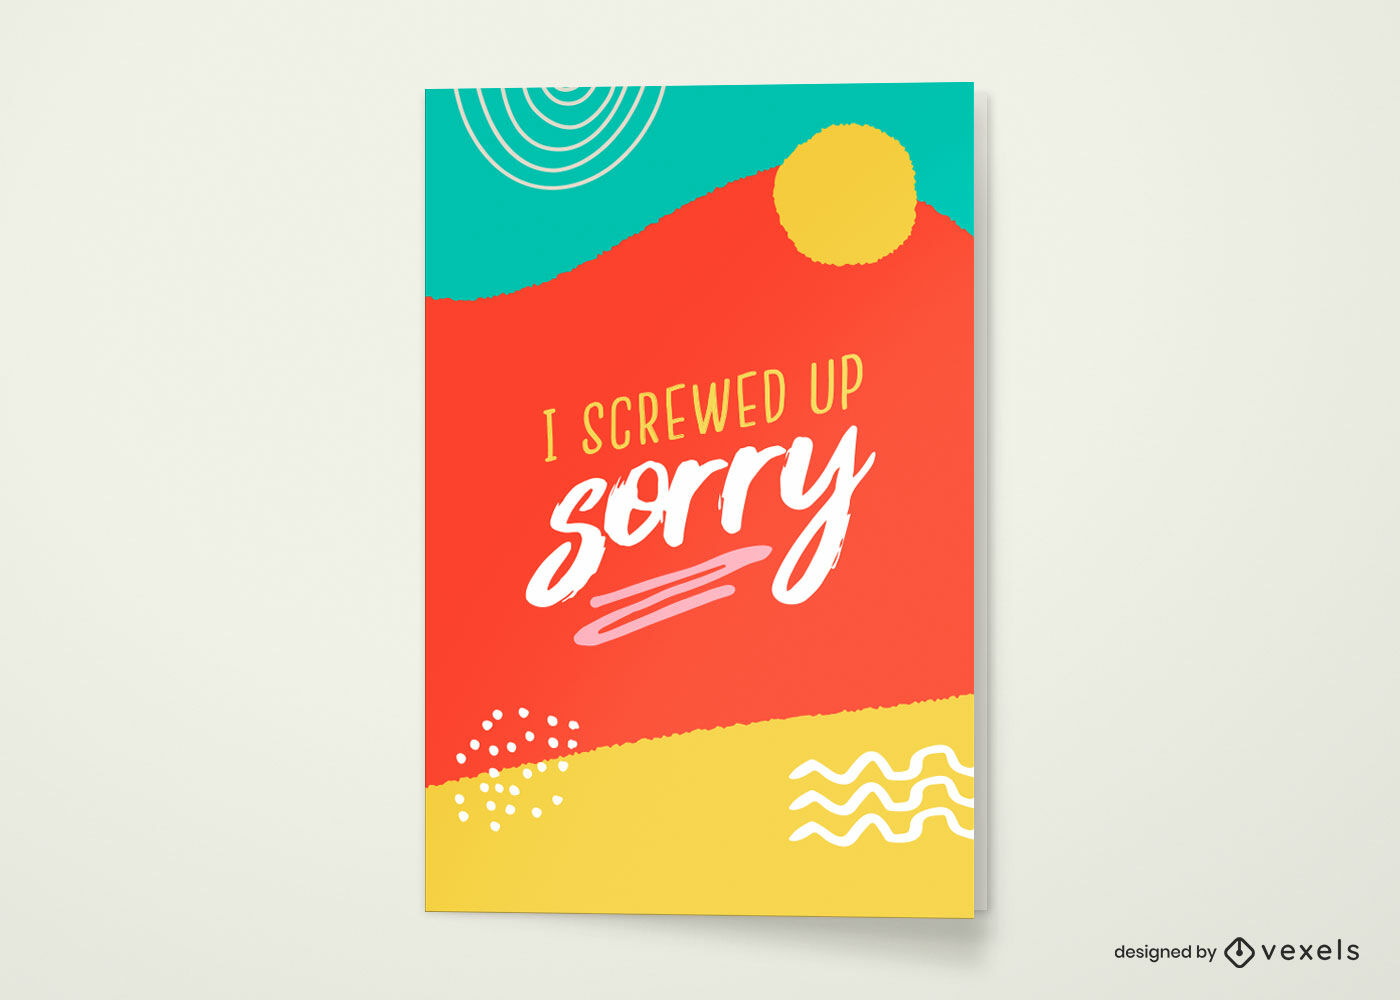 Screwed up sorry greeting card template